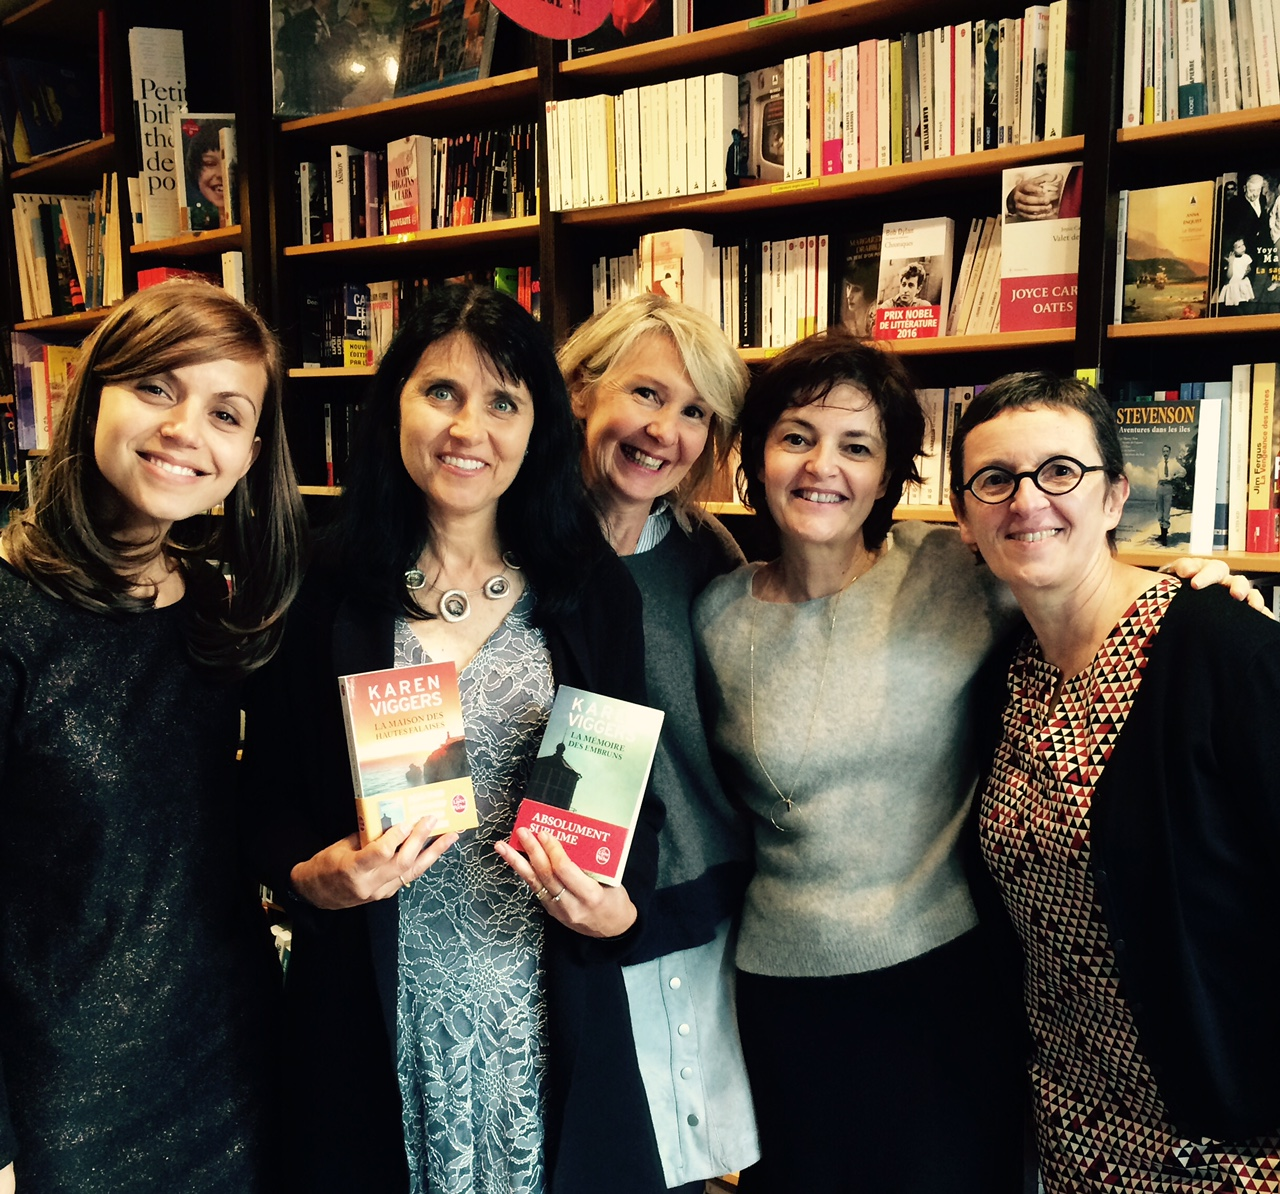 With Veronique Carid of Livre de poche, Nathalie of Mots en Marge, and Anne and Sylive also from Livre de poche.